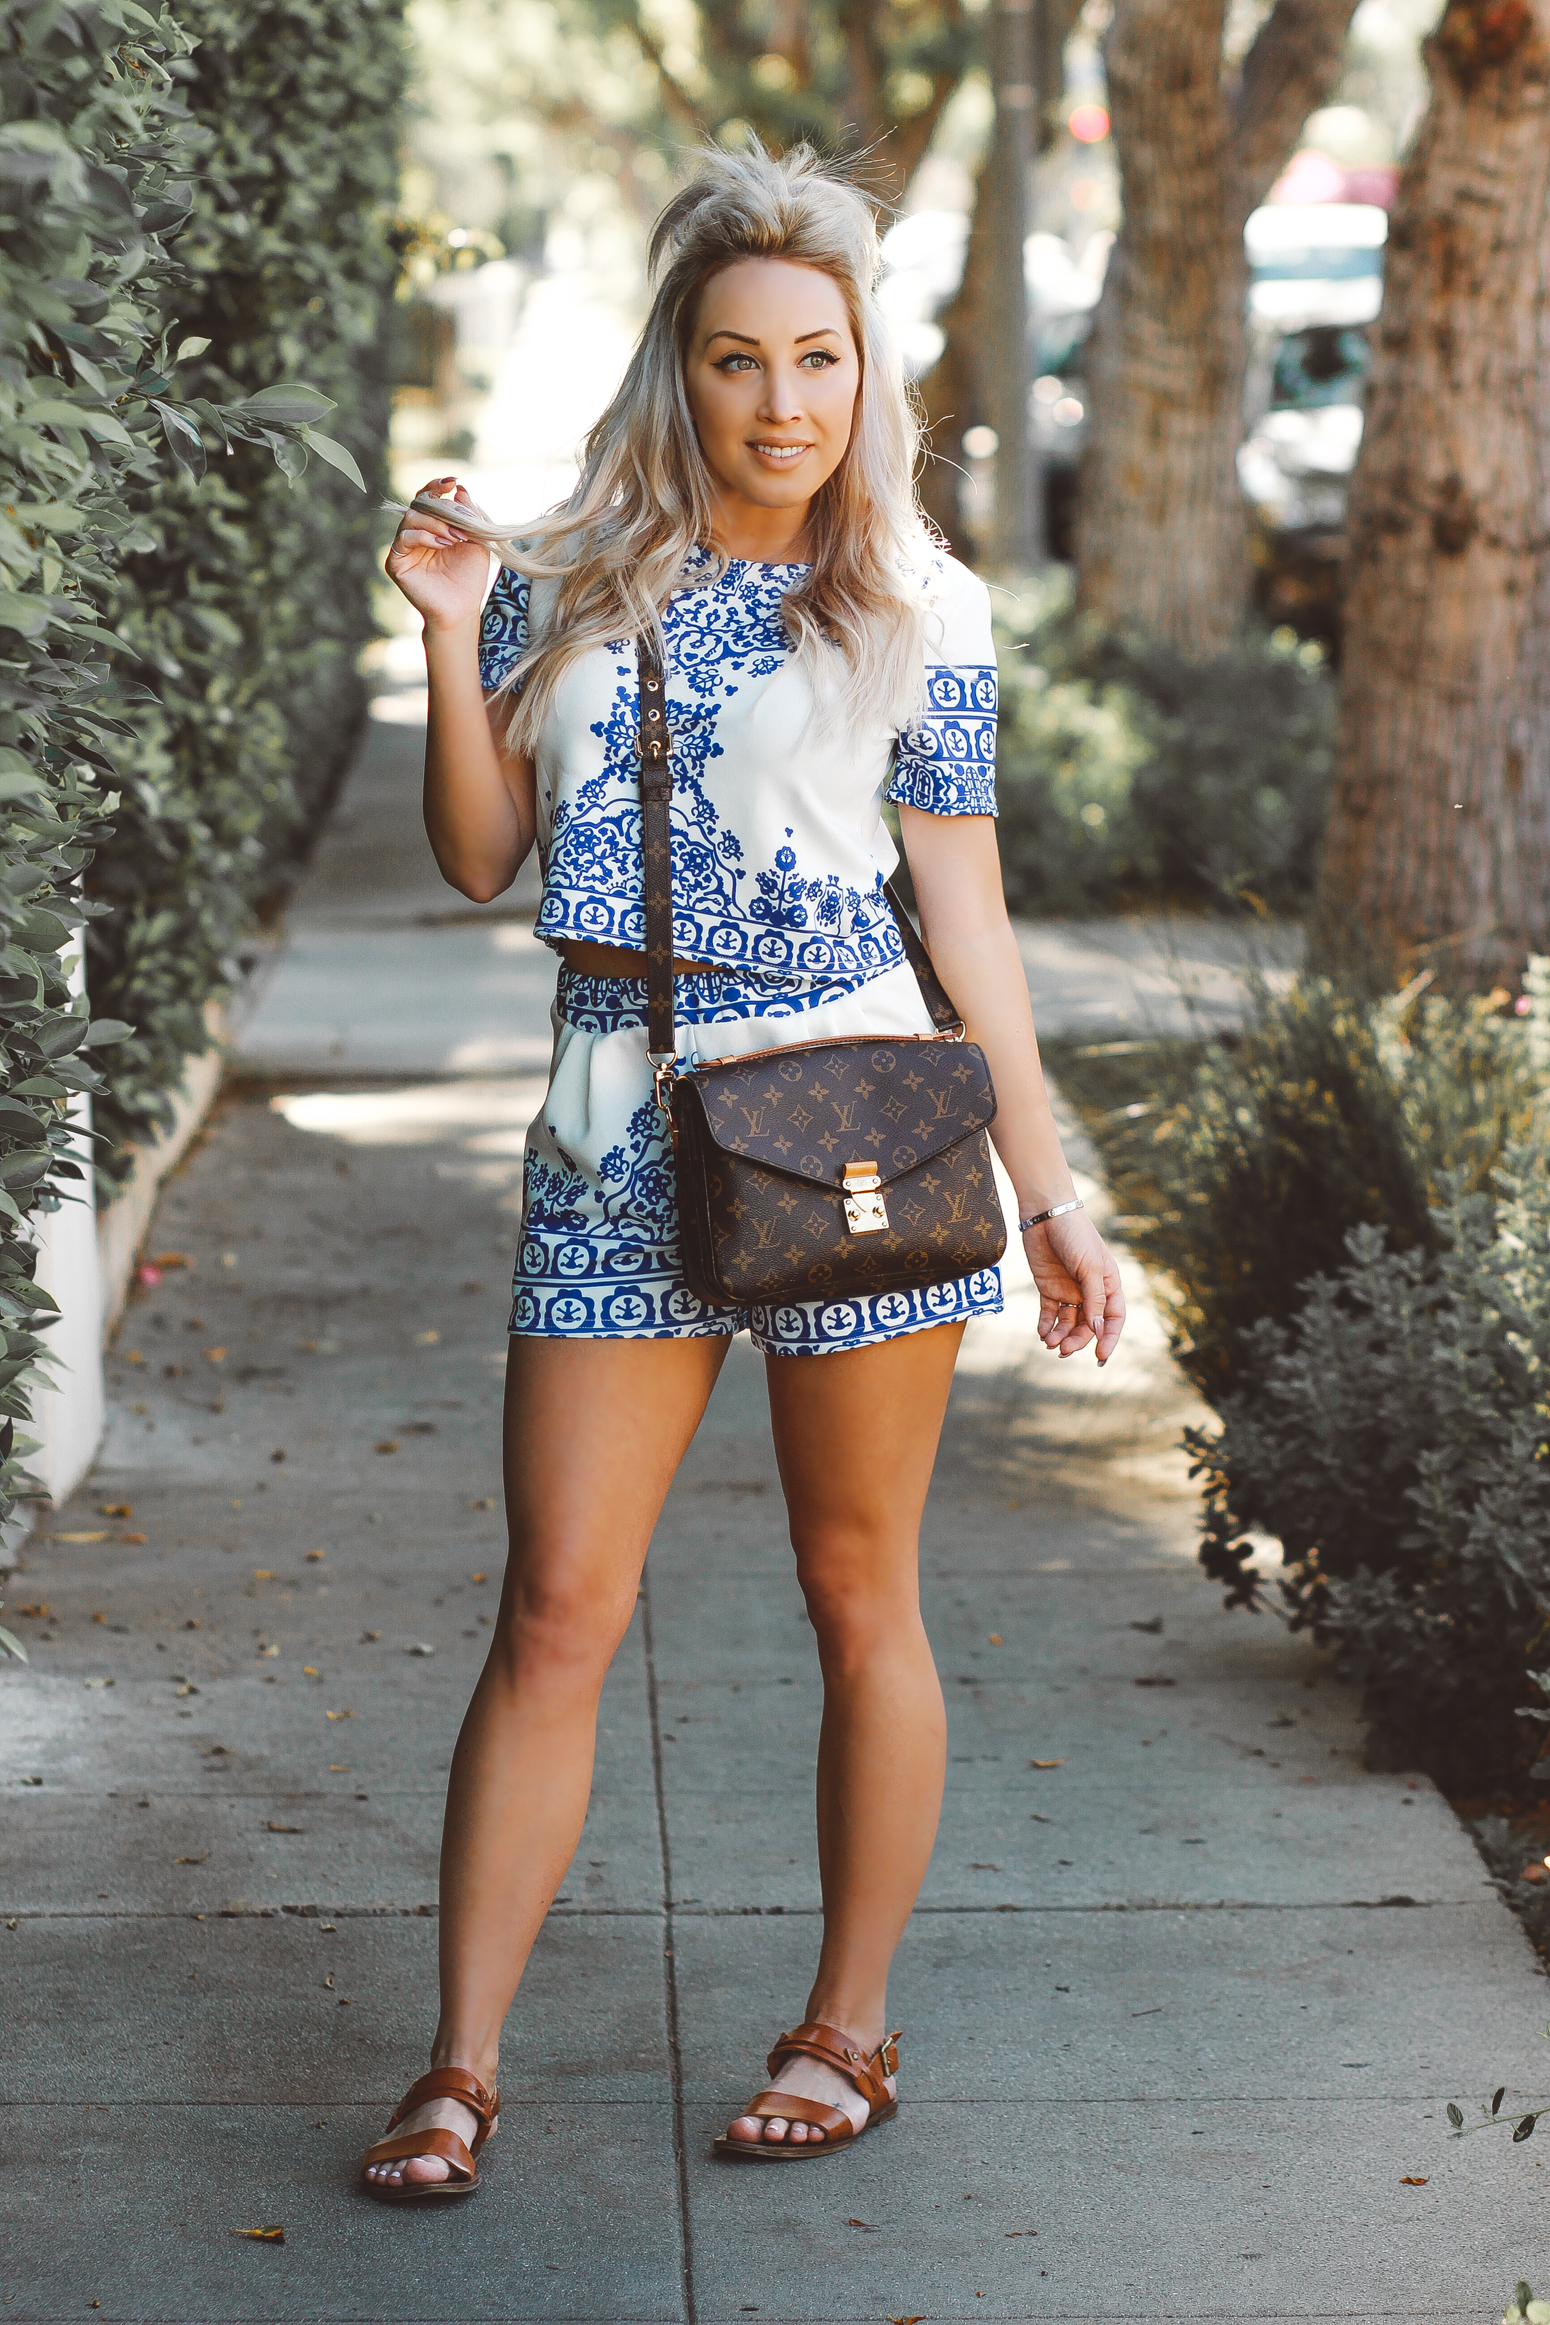 Blondie in the City  |  Porcelain Print Two-Piece Outfit  |  Louis Vuitton Pochette Metis